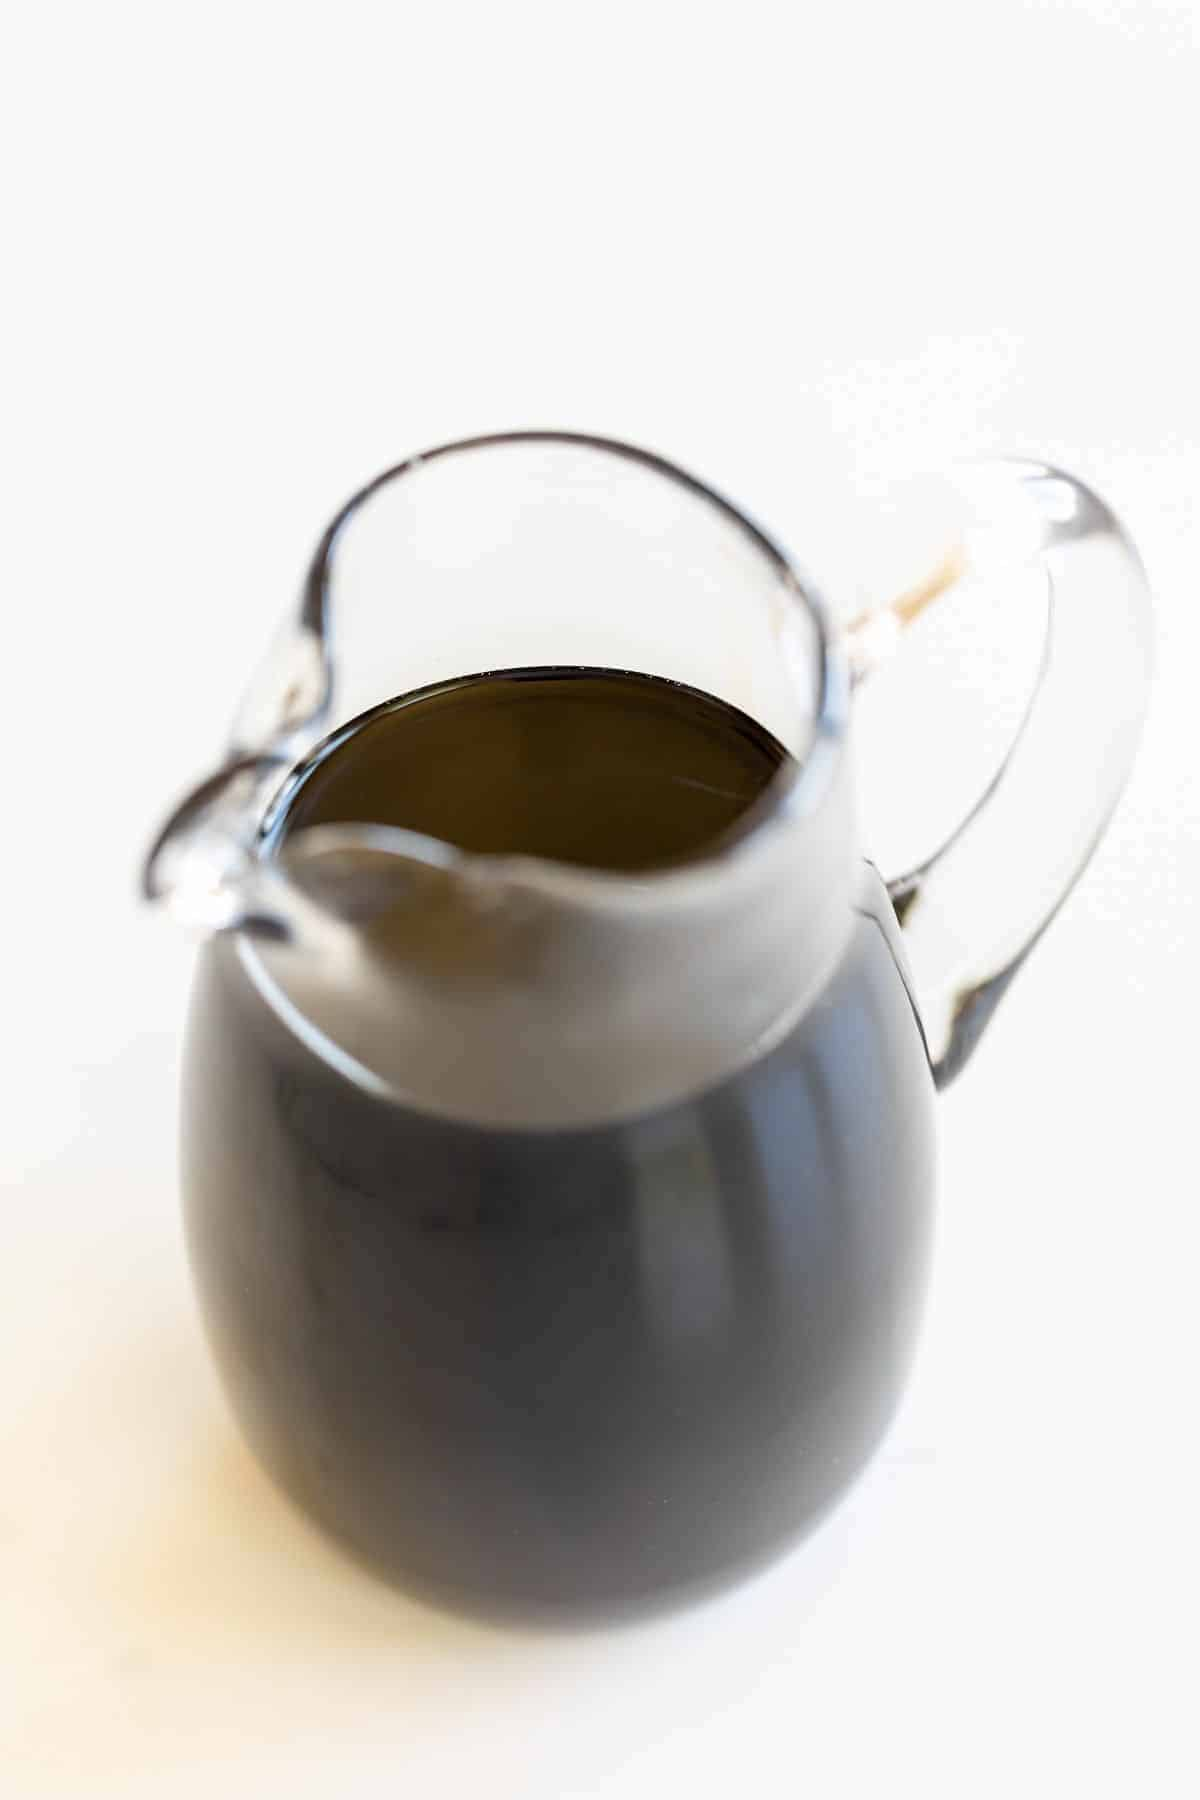 A clear pitcher full of balsamic glaze, on a white surface.